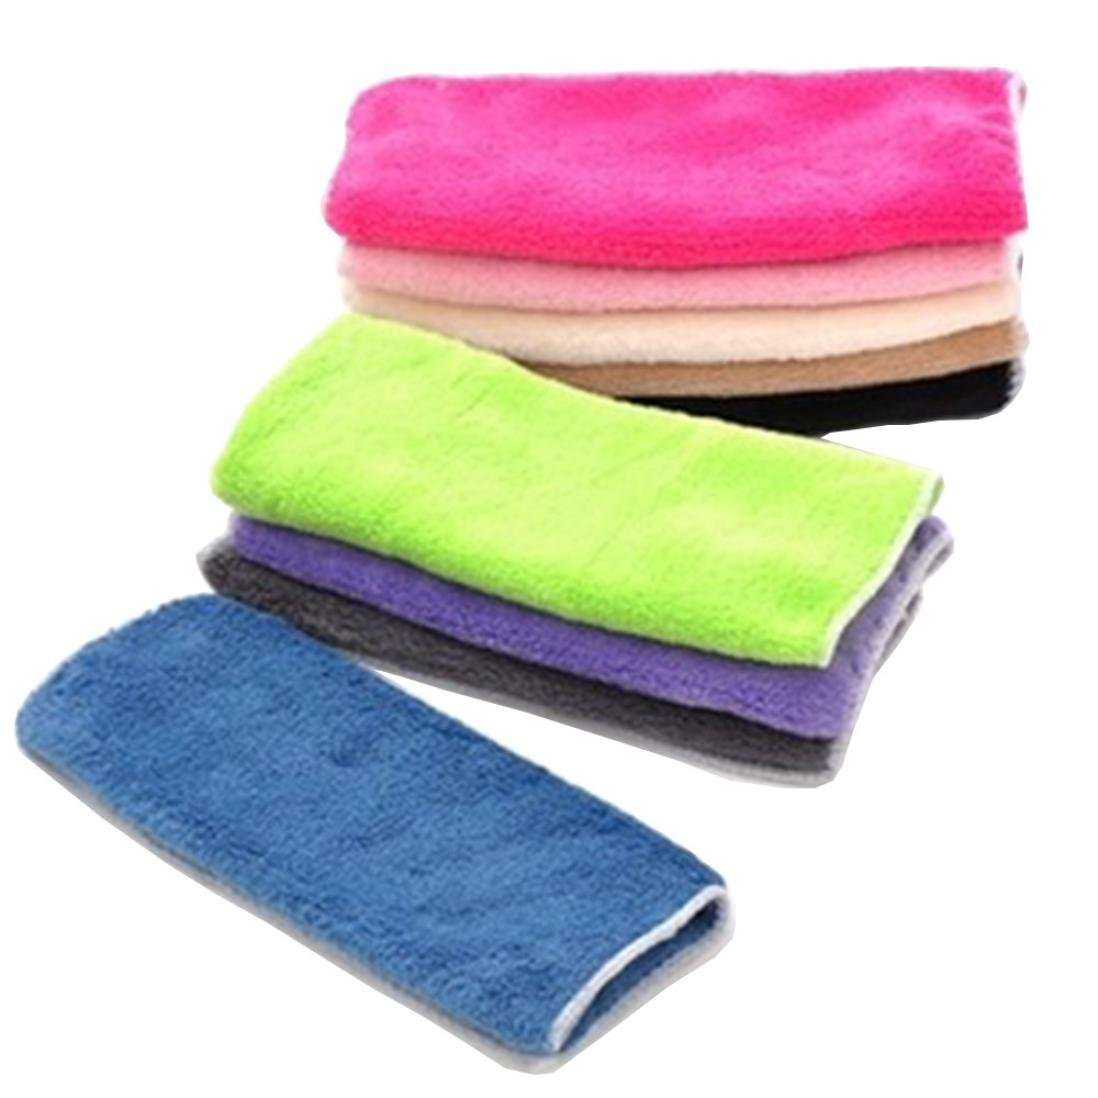 Fullkang 1pc Anti-grease Cloth Bamboo Fiber Washing Towel Magic Kitchen Cleaning Wiping Rags Random Color